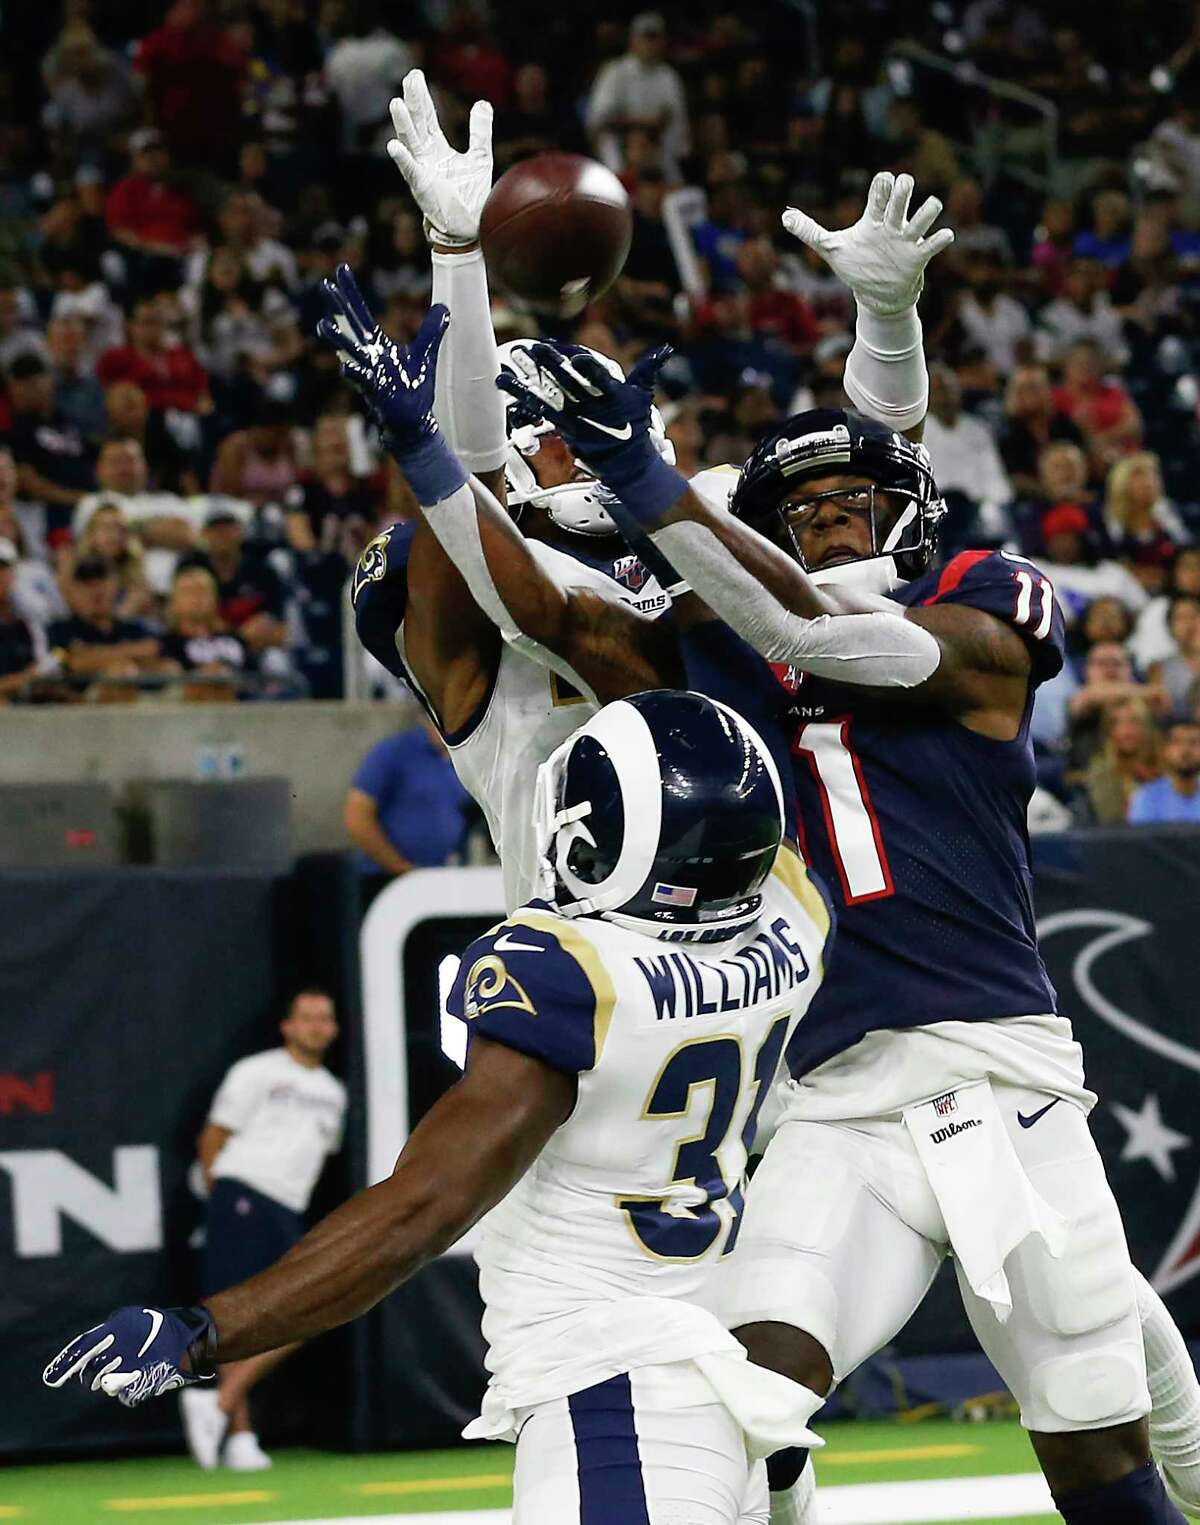 Los Angeles Rams defensive back Darious Williams (31) breaks up a pass intended for Houston Texans wide receiver Steven Mitchell (11) during an NFL preseason football game at NRG Stadium on Thursday, Aug. 29, 2019, in Houston.